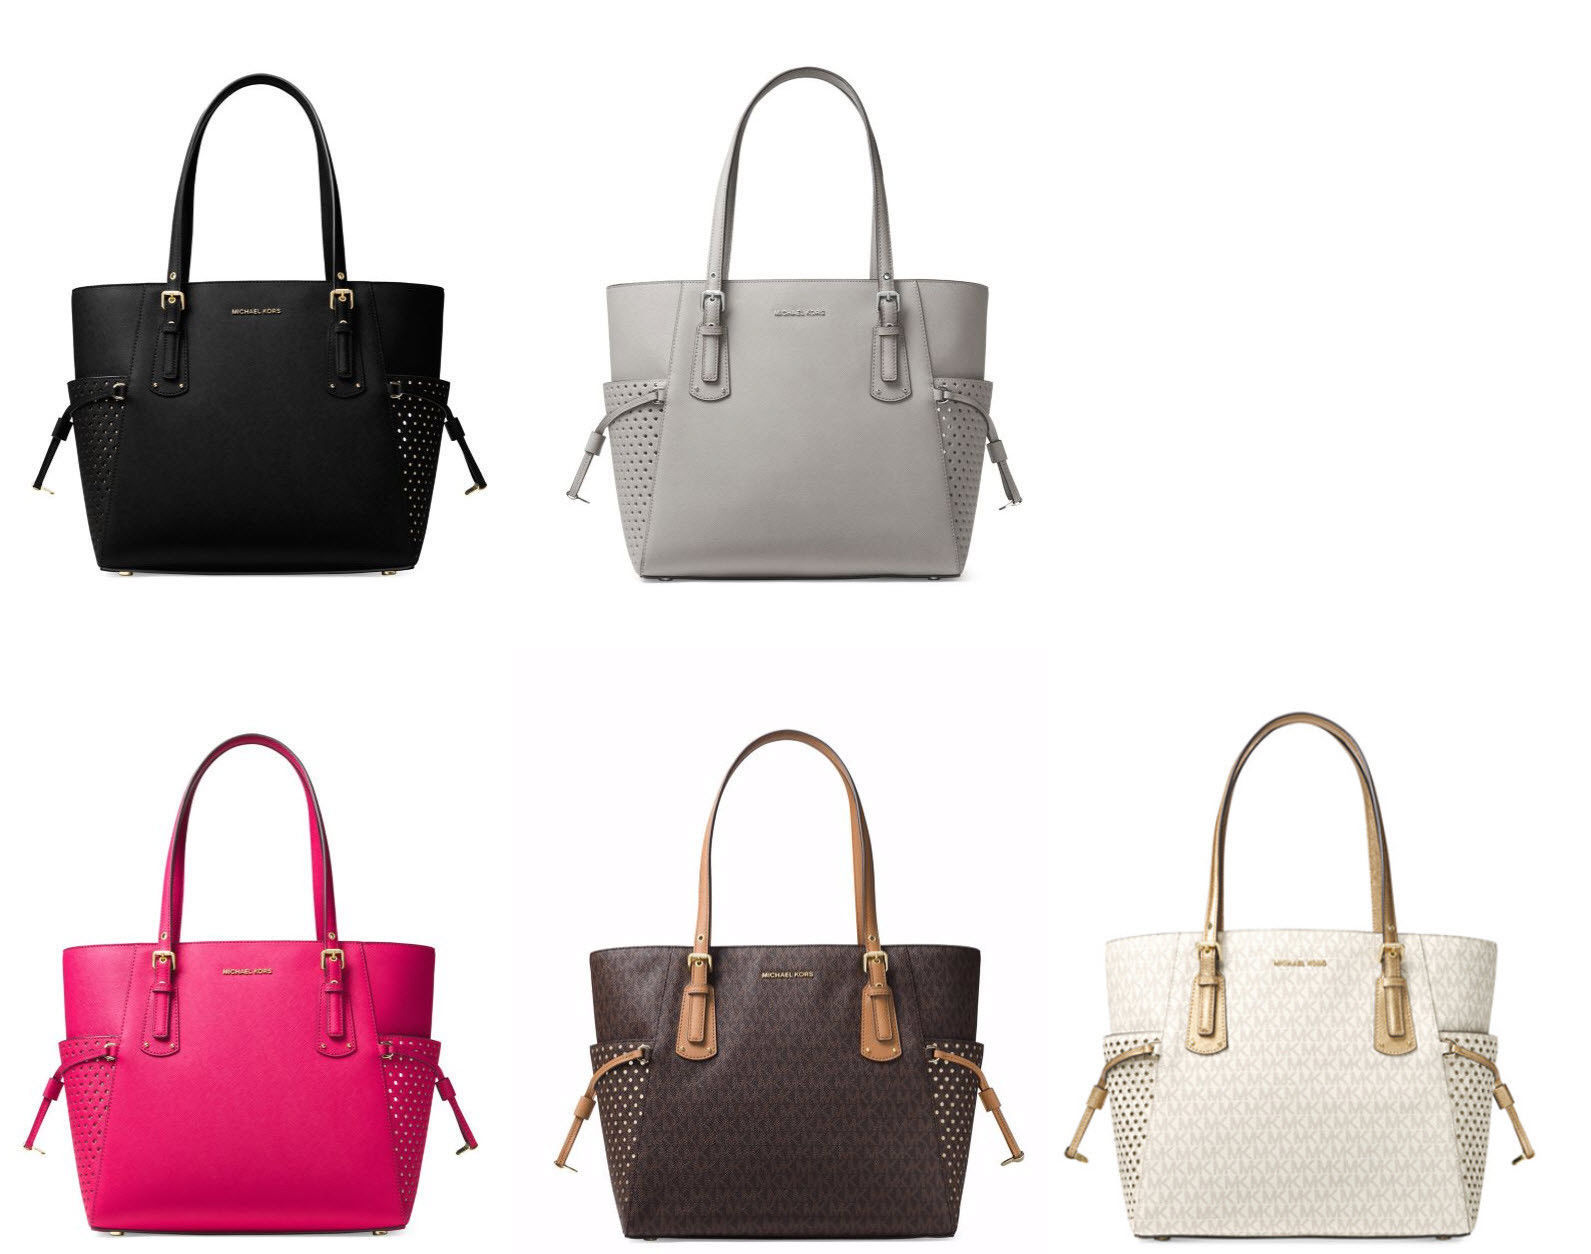 77f34785b28bc1 Michael Kors Voyager East West Tote and 50 similar items. 57